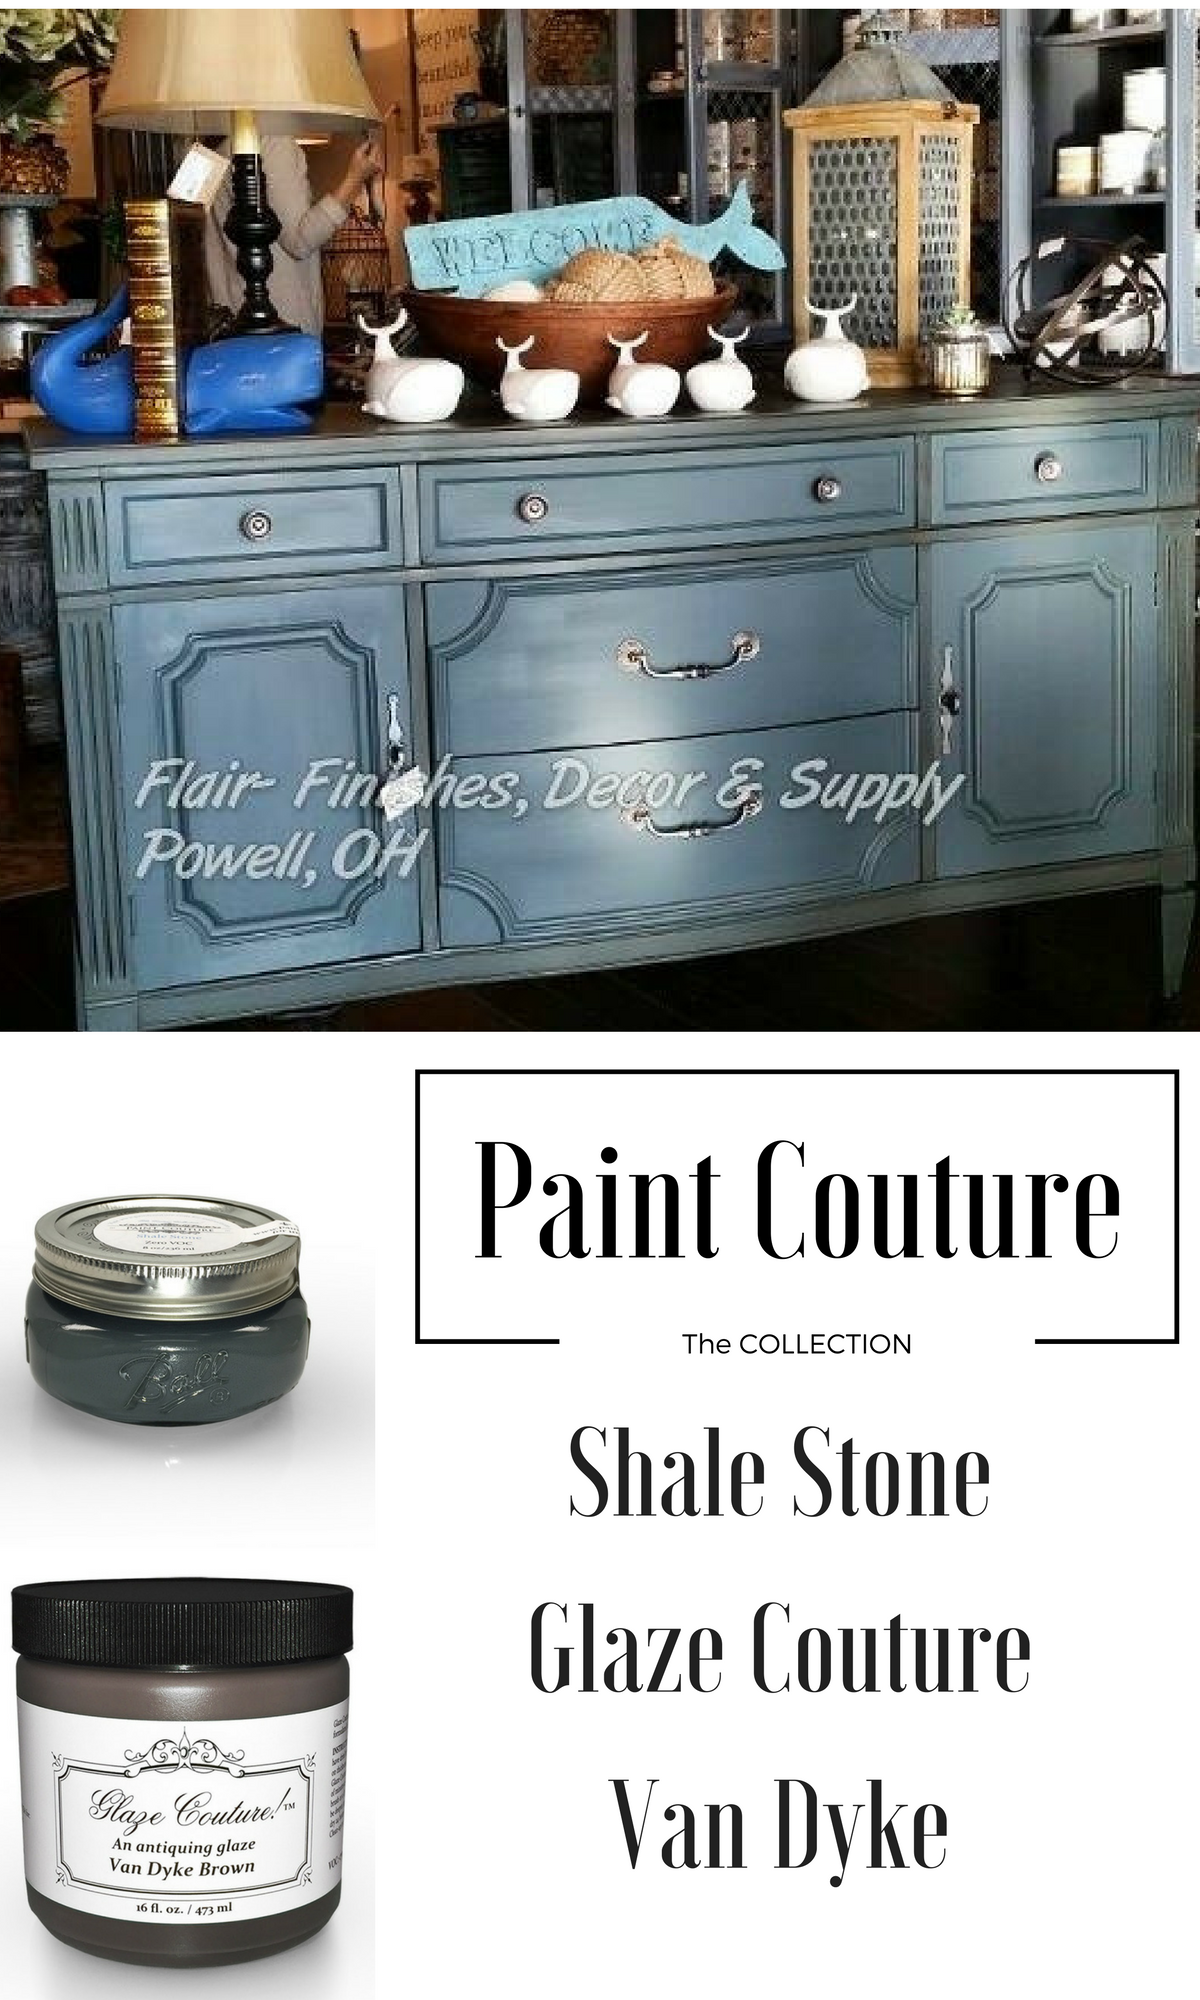 Paint Couture Is A Low Voc Water Based Acrylic Now Available In 27 Colors It Self Priming Décor Furniture And Cabinet